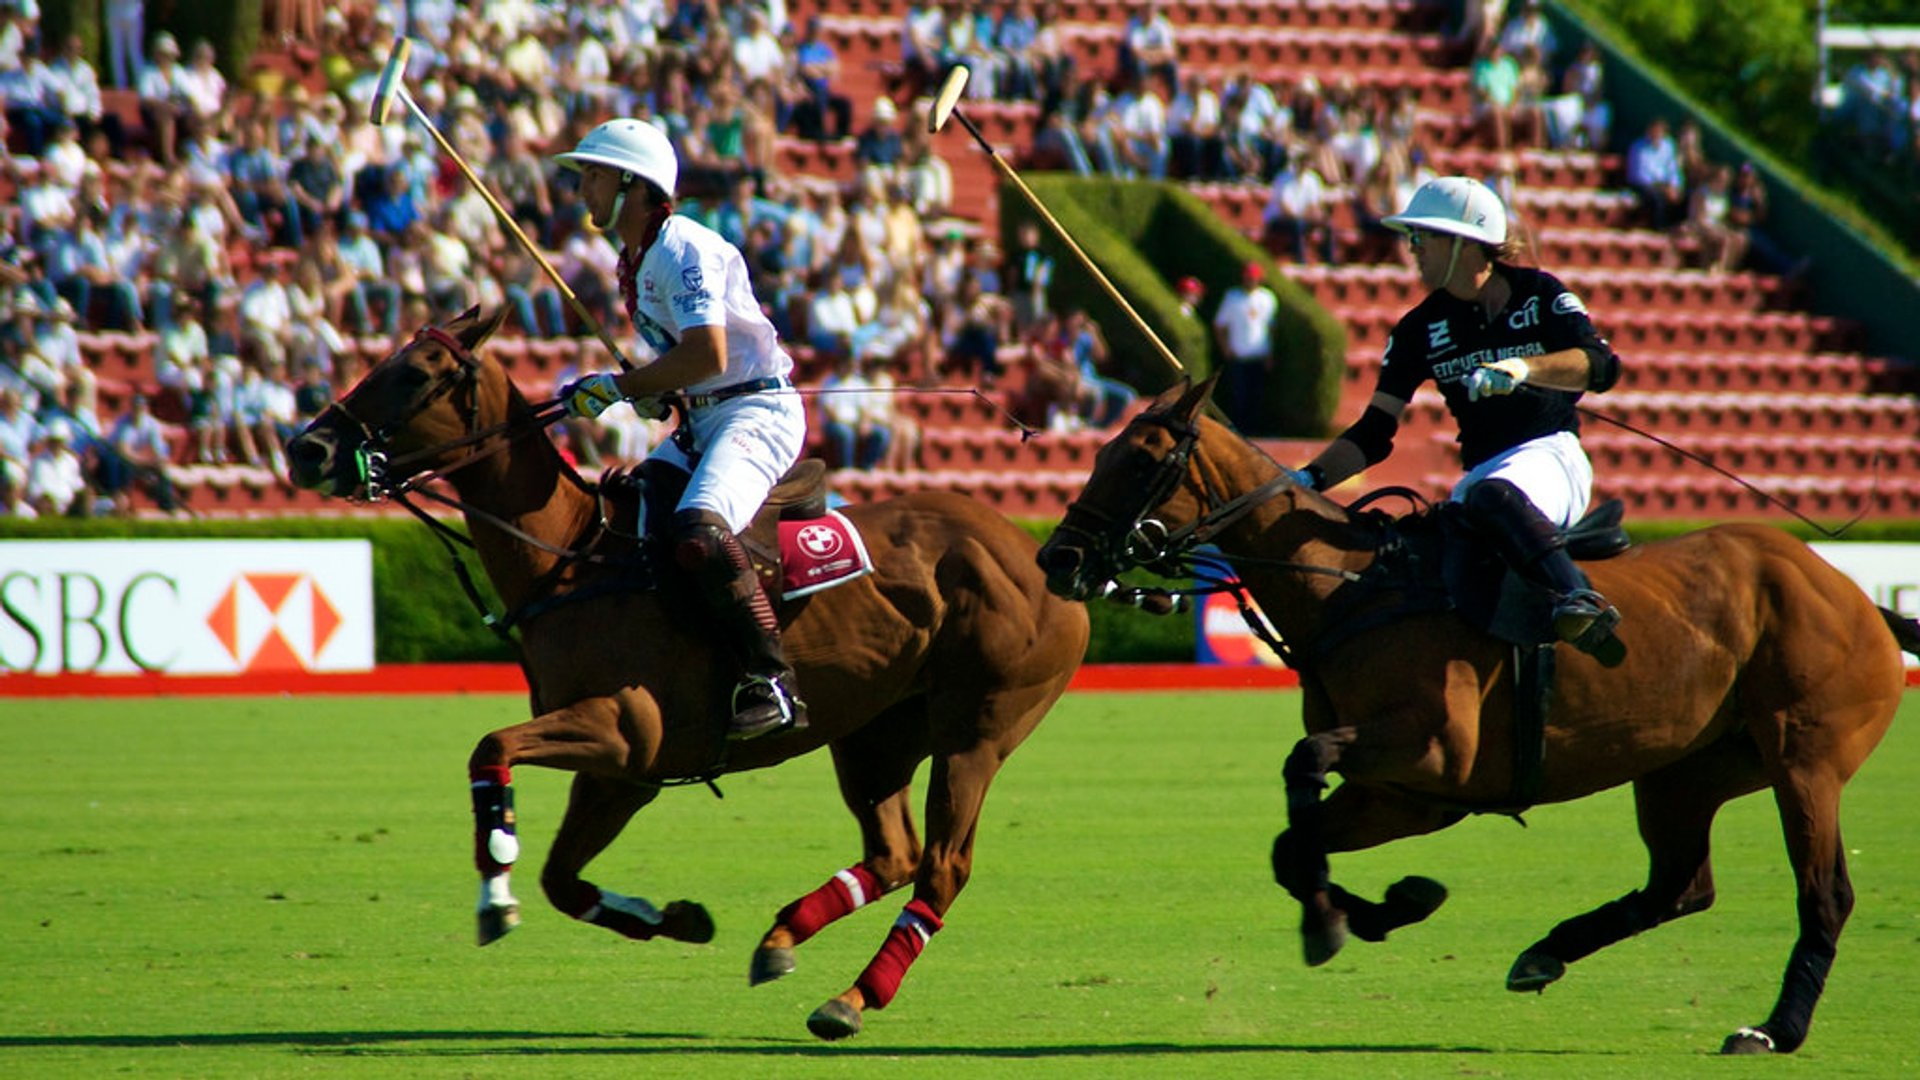 Campeonato Argentino Abierto de Polo (Argentine Polo Open Championship) in Buenos Aires - Best Time